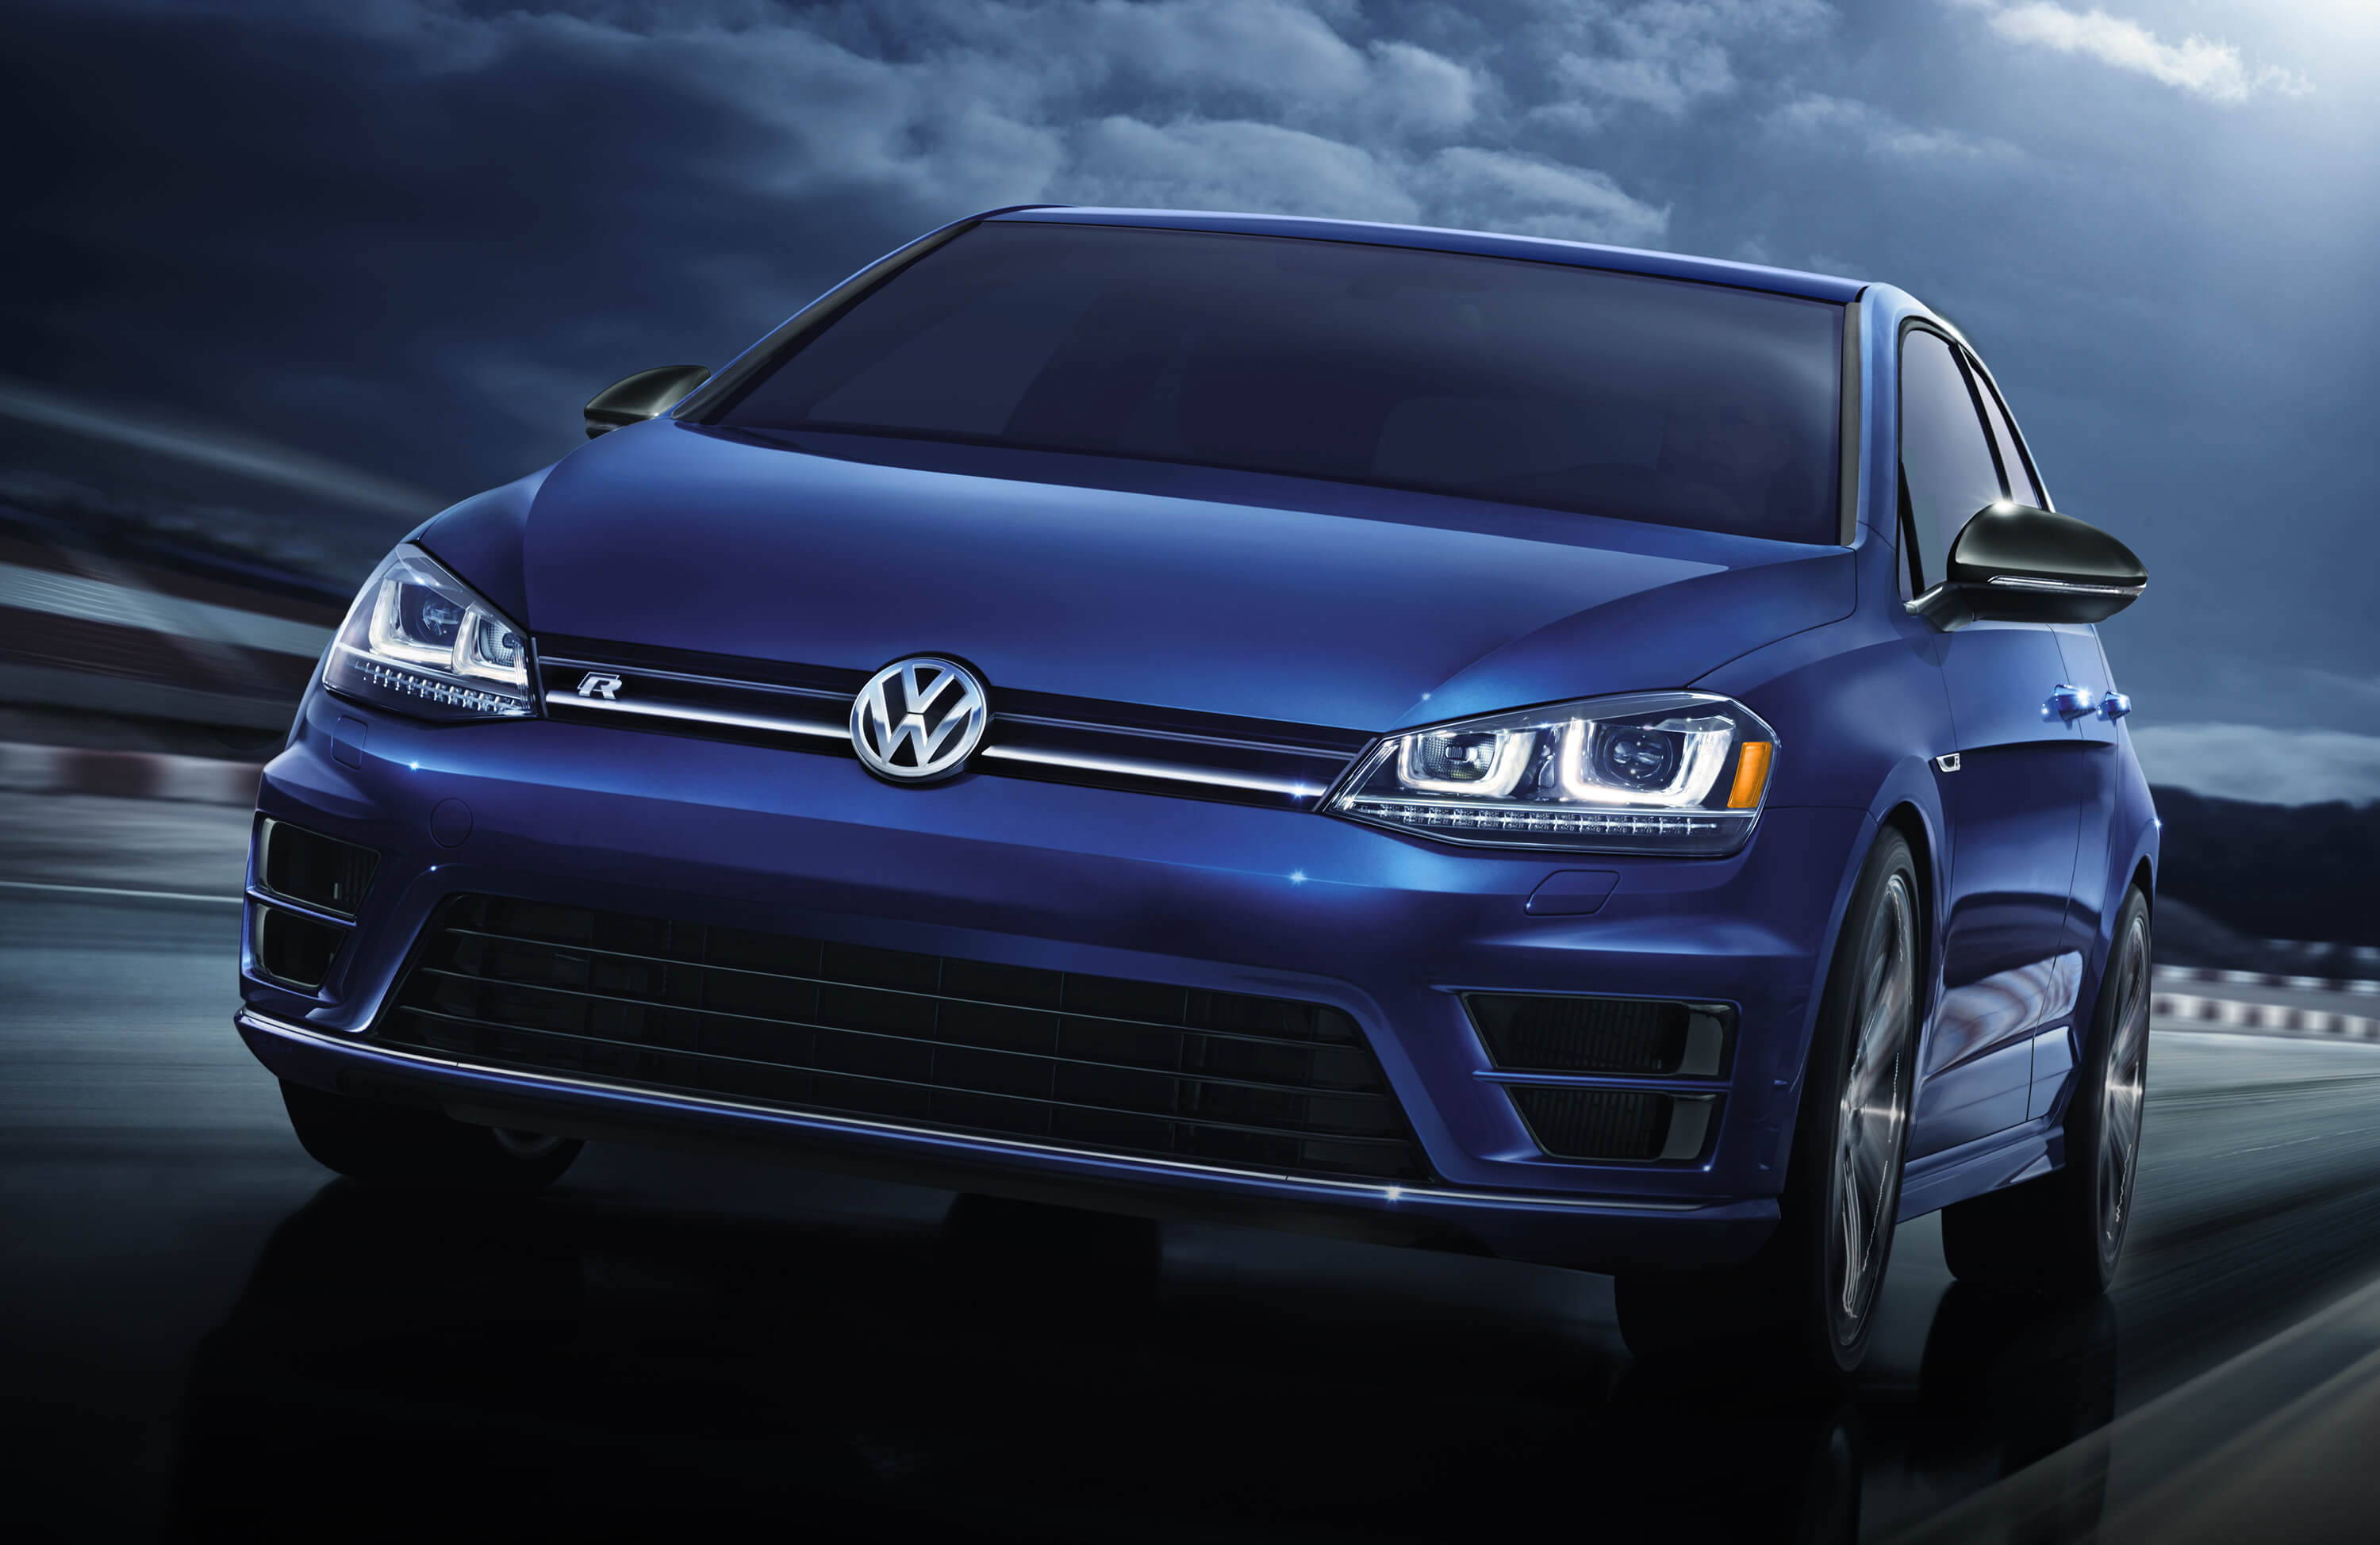 New Volkswagen Golf R Lease Deals & Finance fers Van Nuys CA